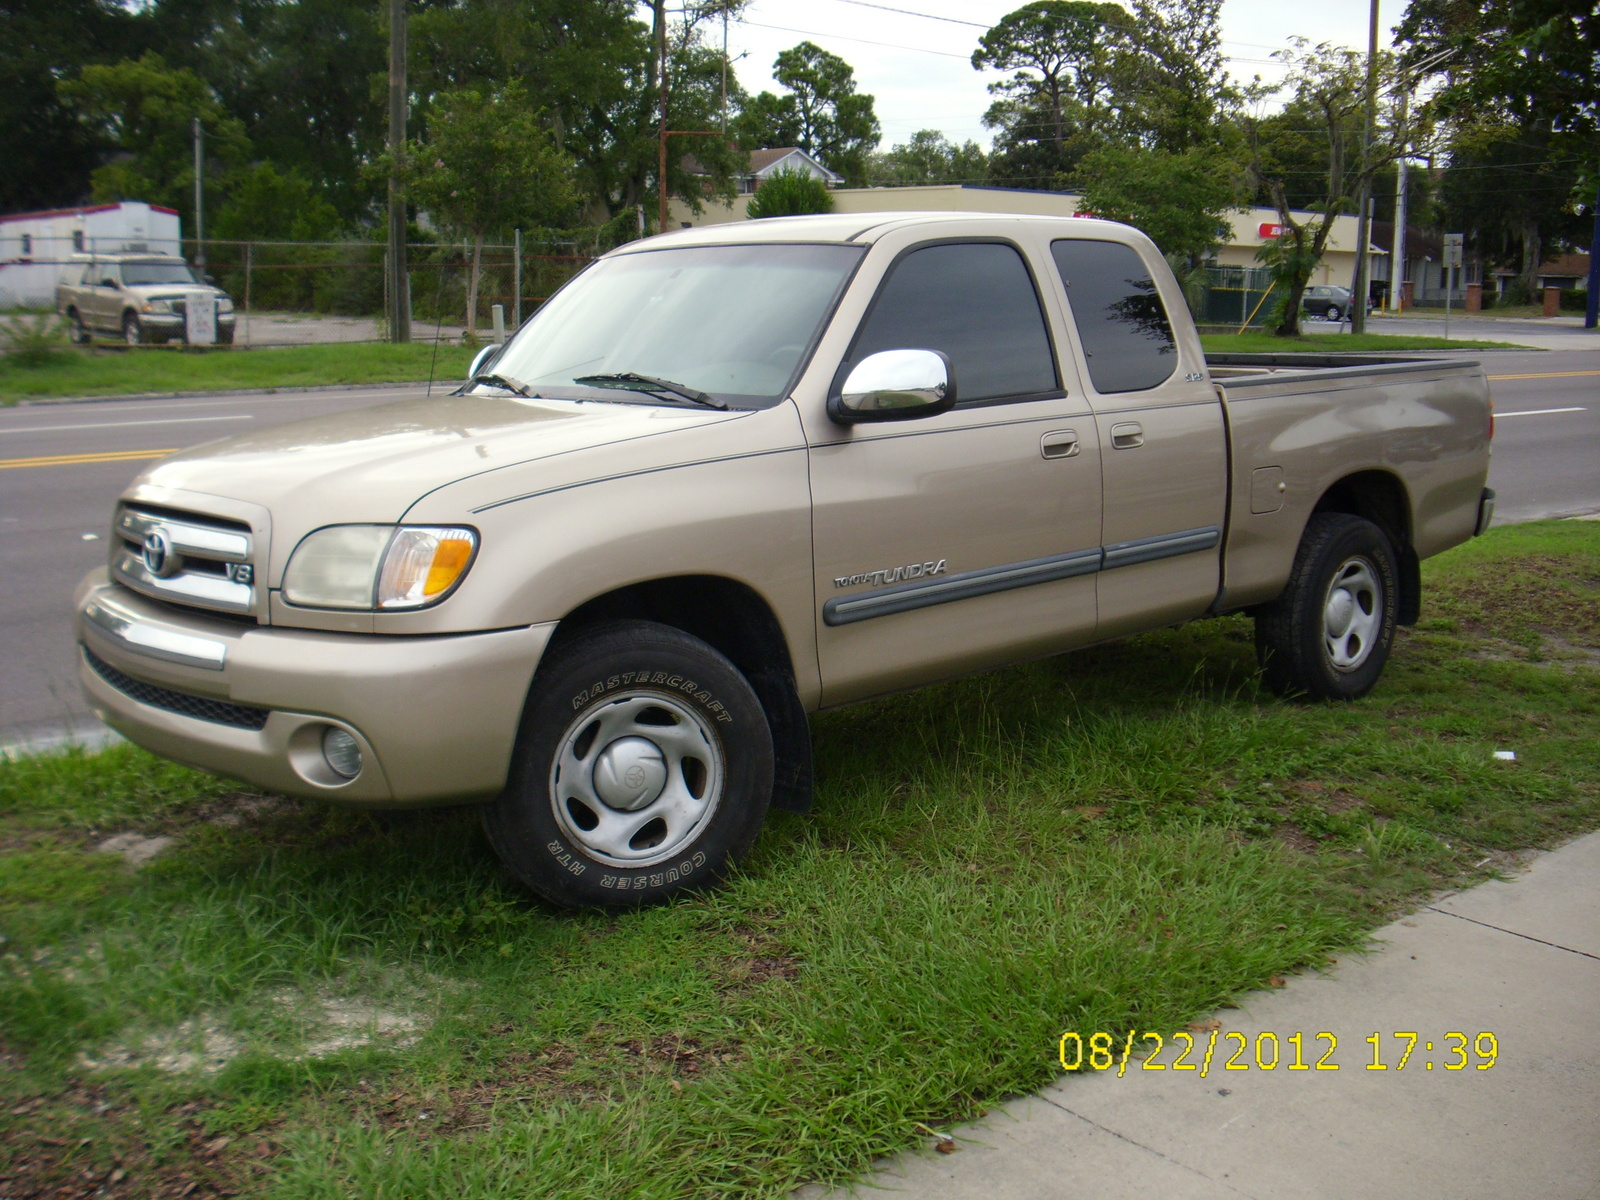 2007 Chevrolet Silverado 1500 Extended Cab >> 2003 Toyota Tundra - Pictures - CarGurus